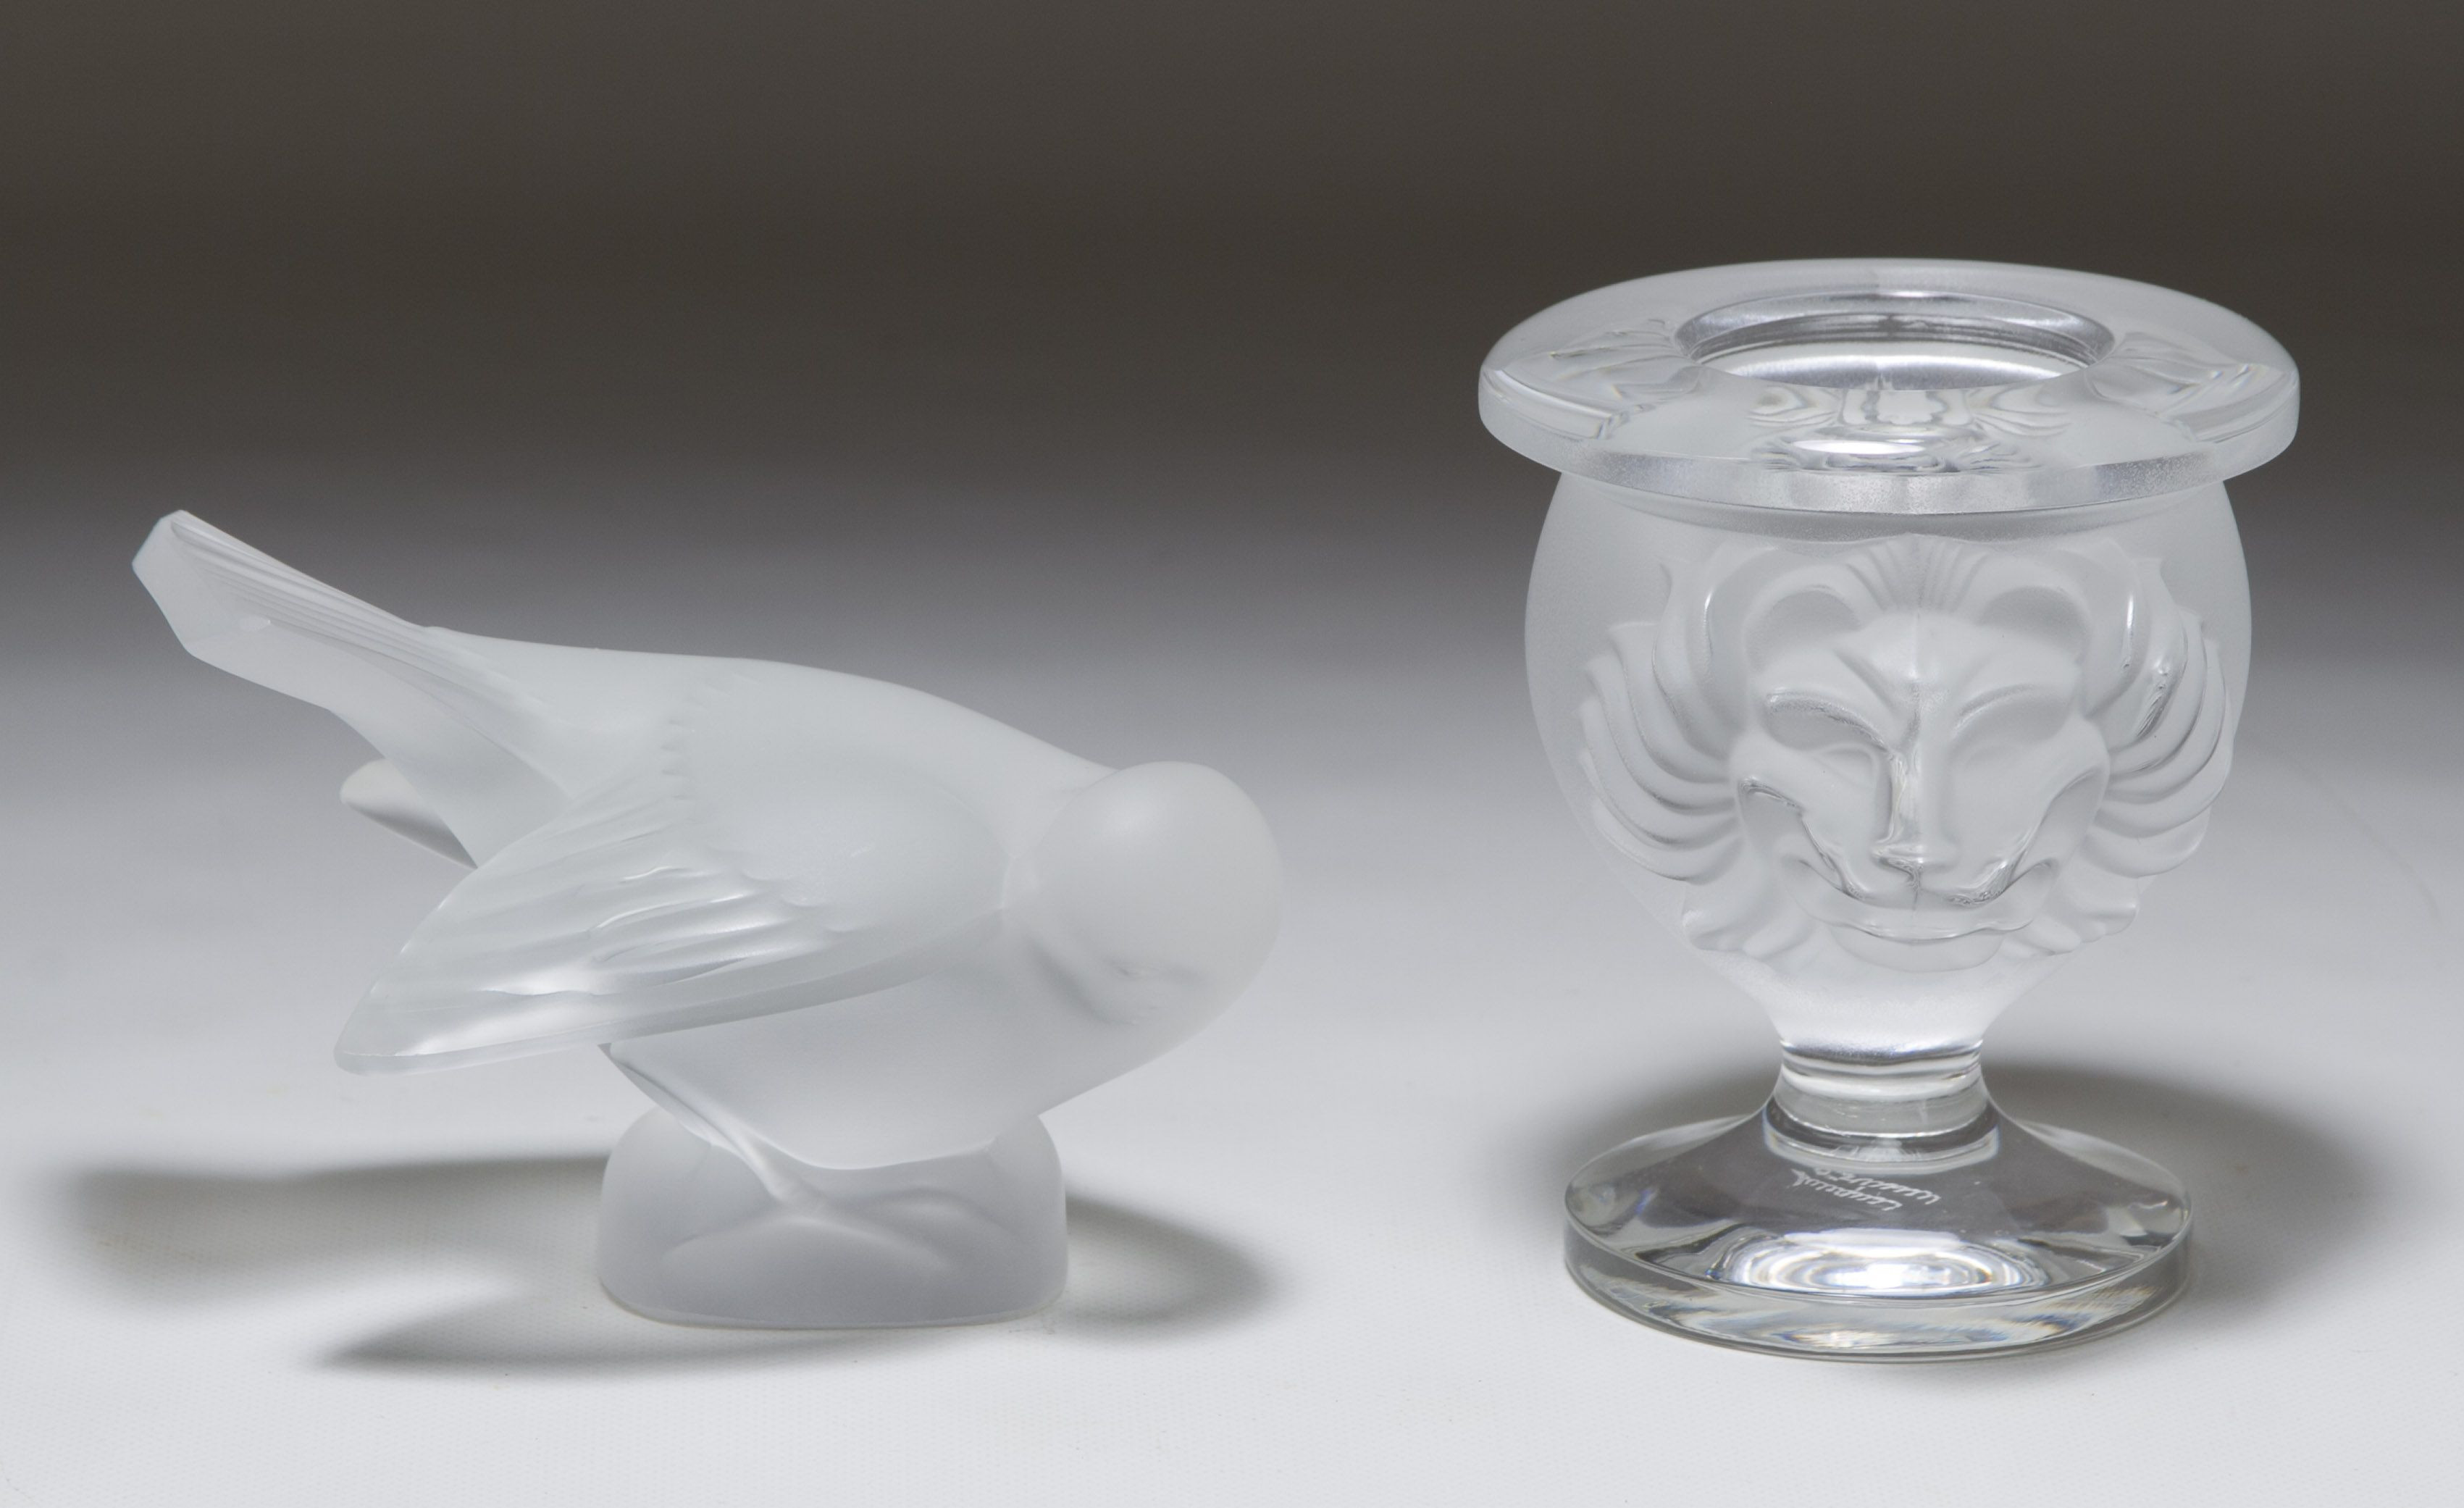 waterford crystal vase small of lot 350 lalique crystal vase and bird figurine two items including in lot 350 lalique crystal vase and bird figurine two items including a small vase with lion heads and a bird figurine both having etched marks lalique